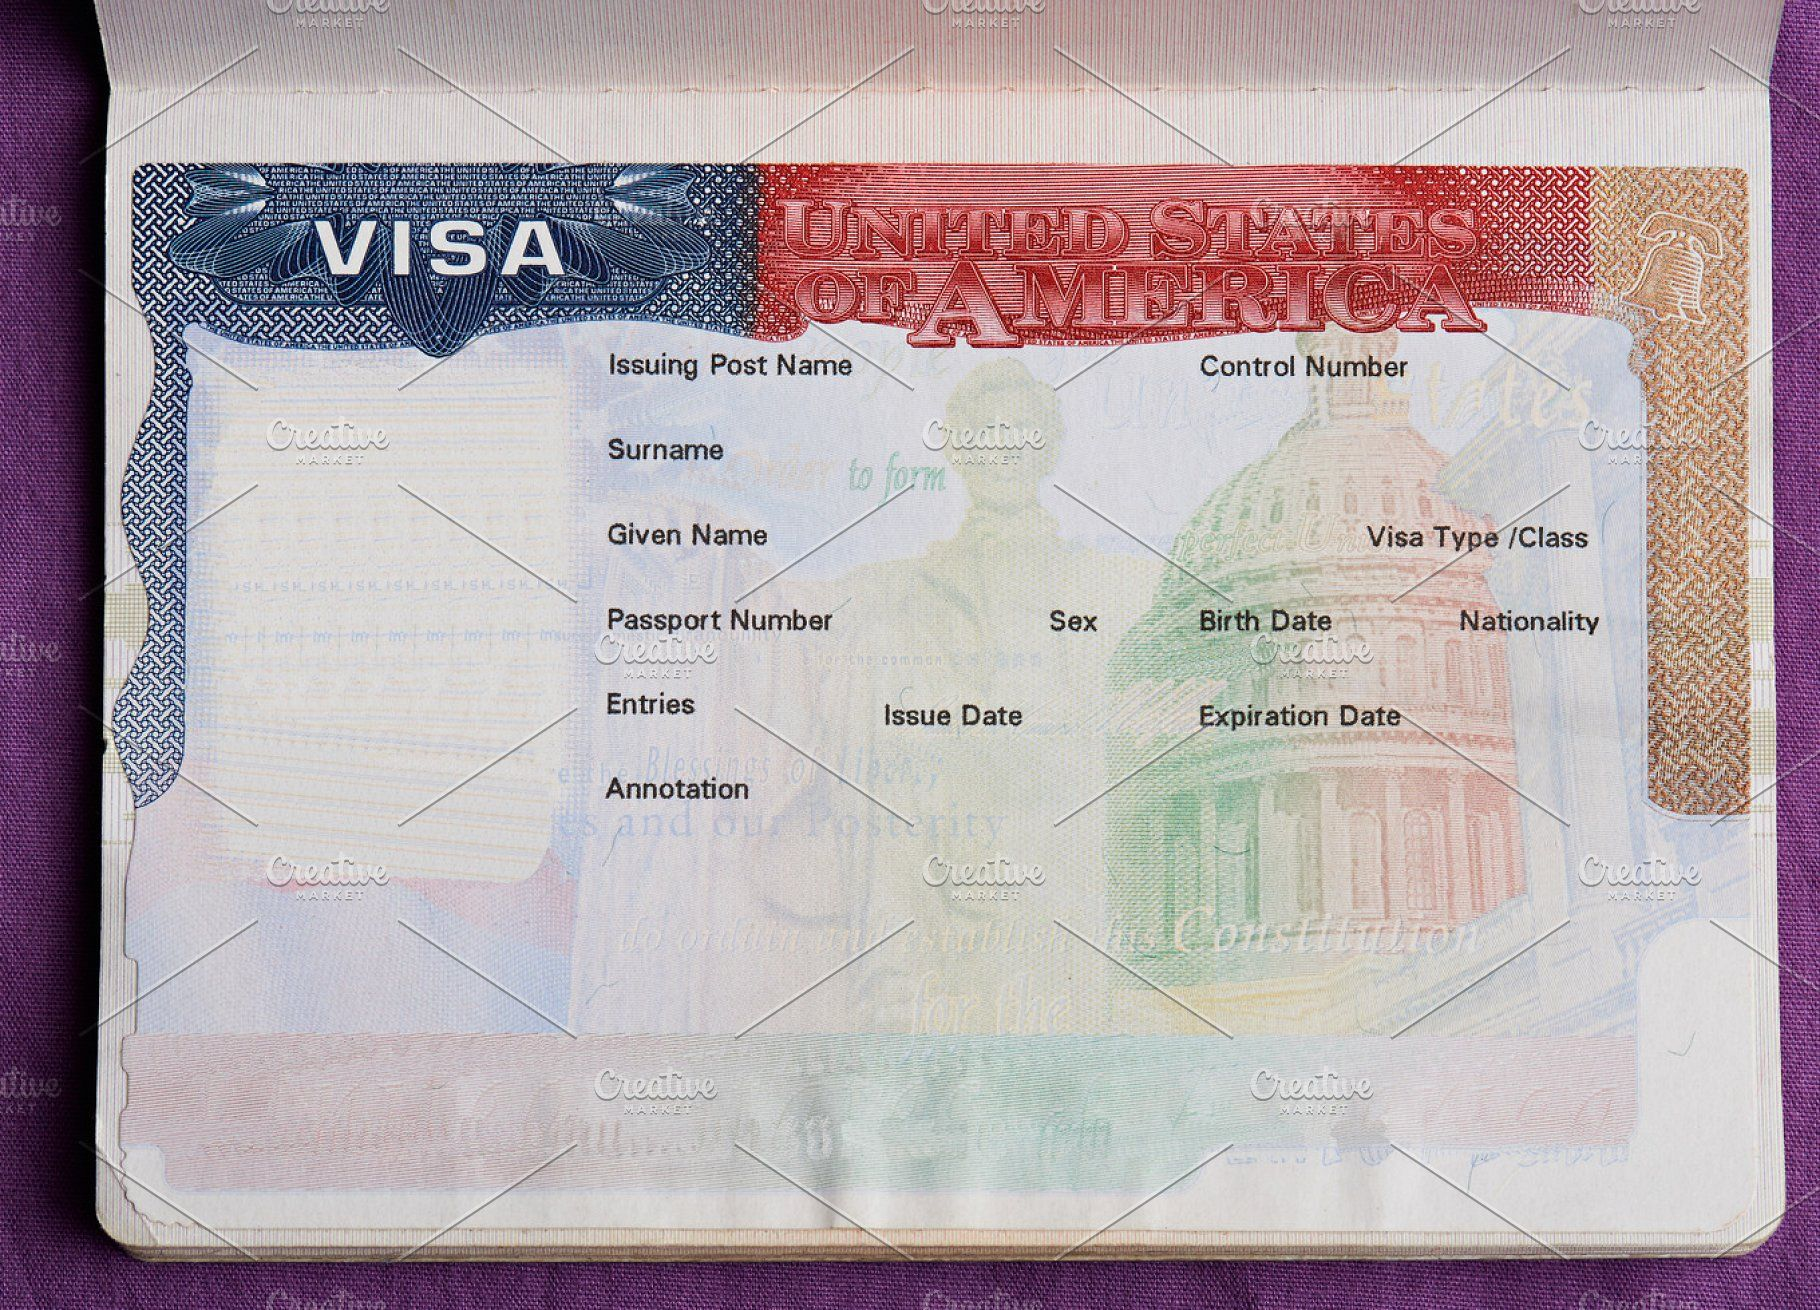 Blank American Visa Business Photos Visa Credit Card Design